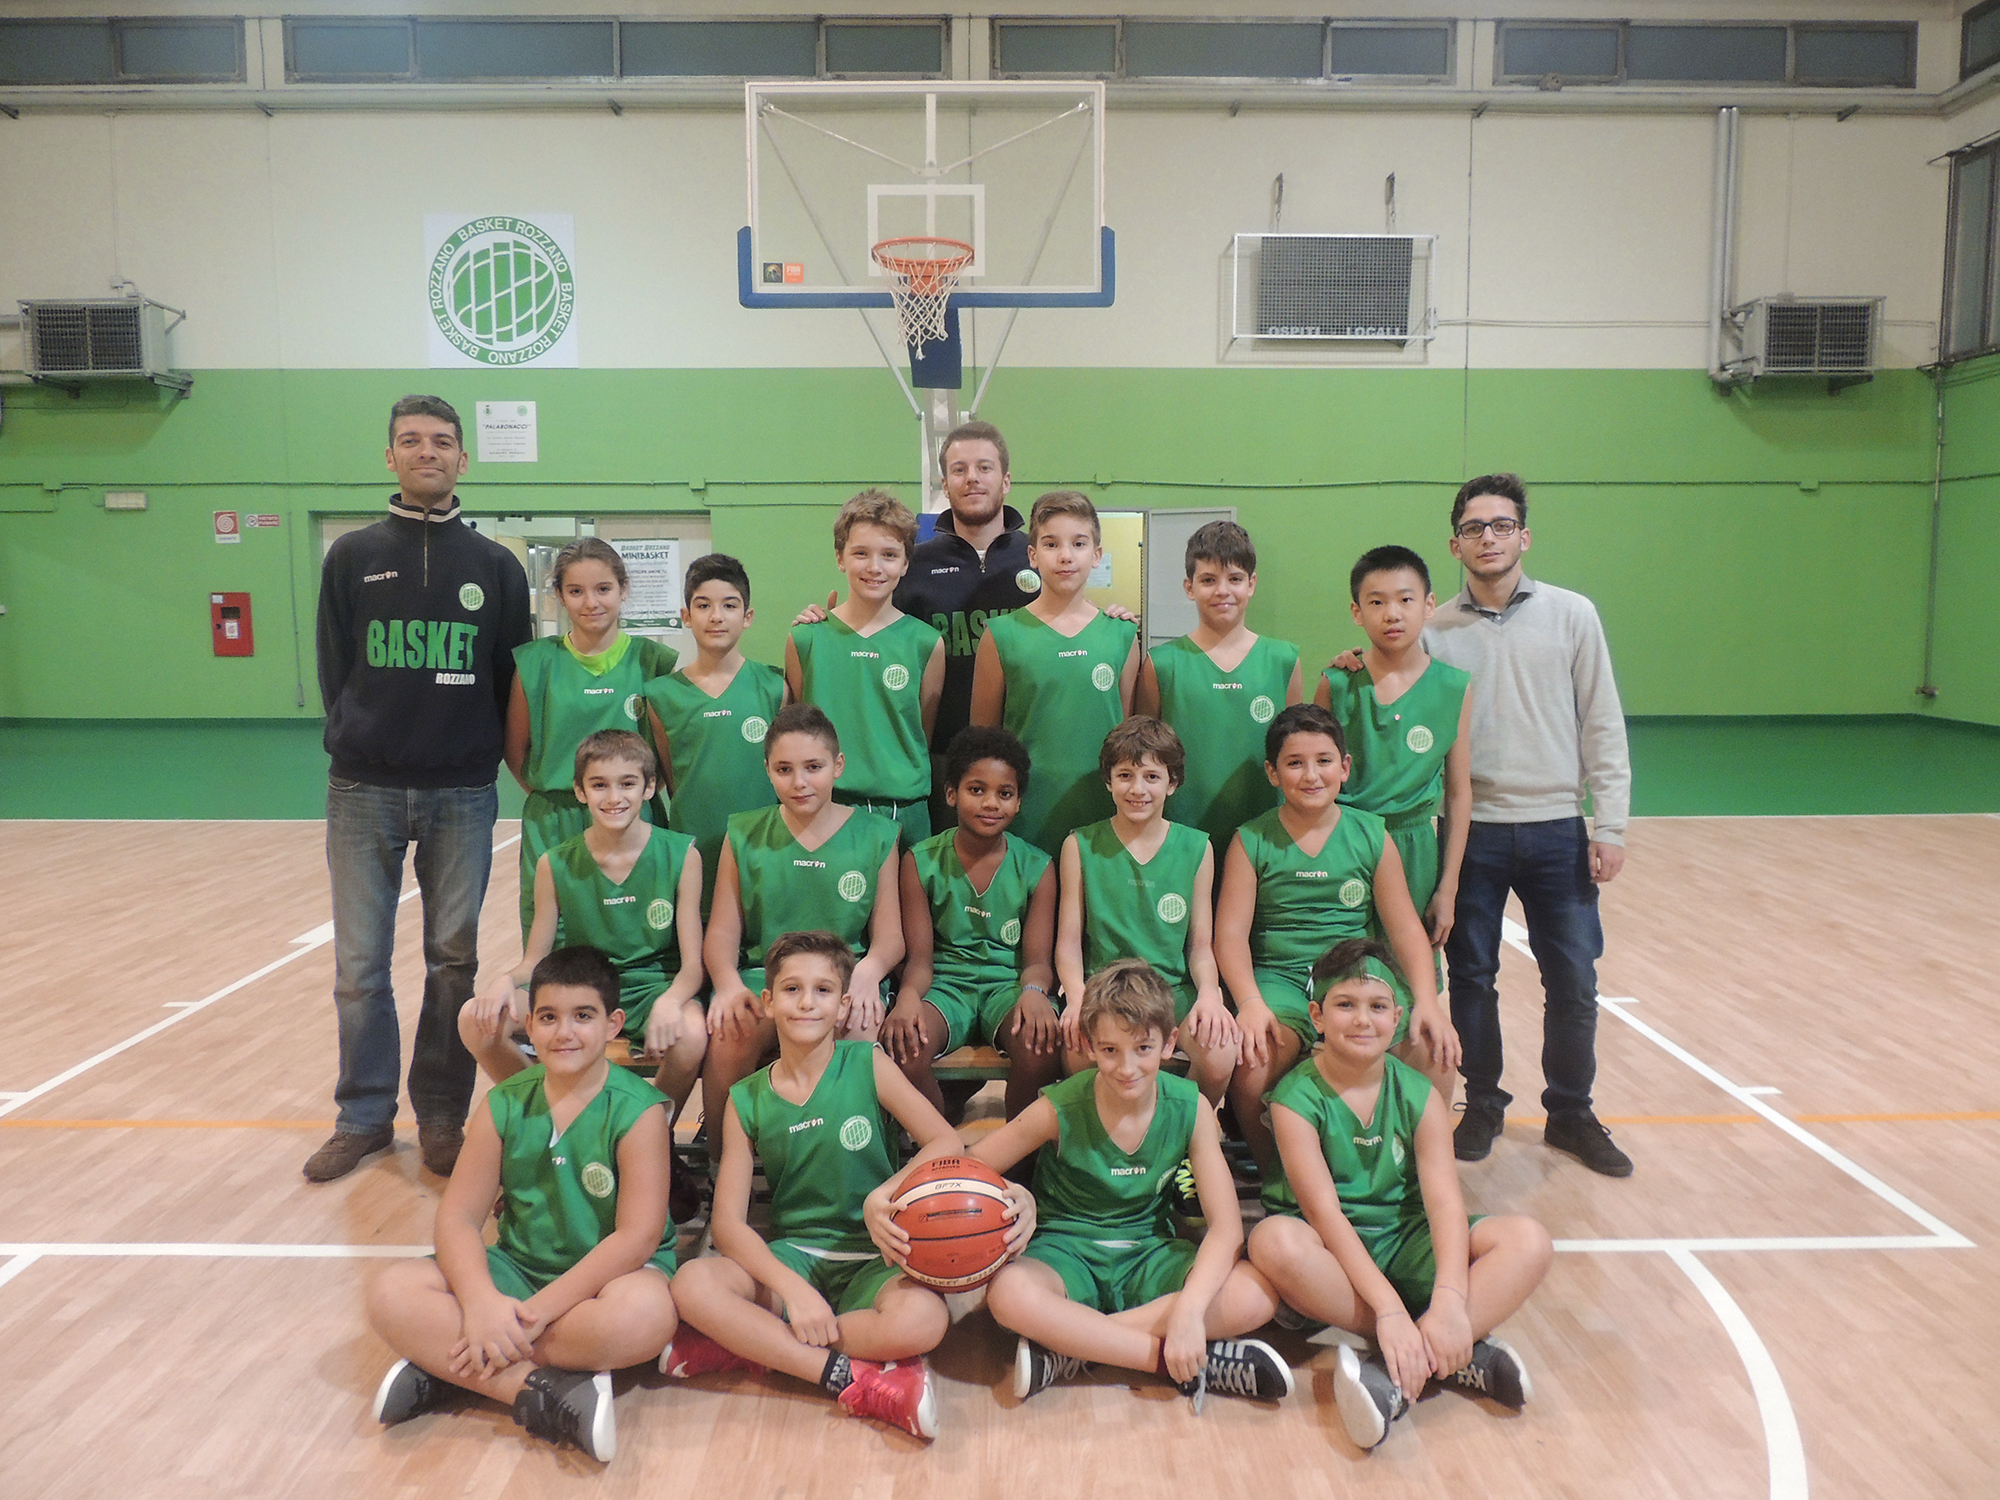 Dragons-Rozzano-Team